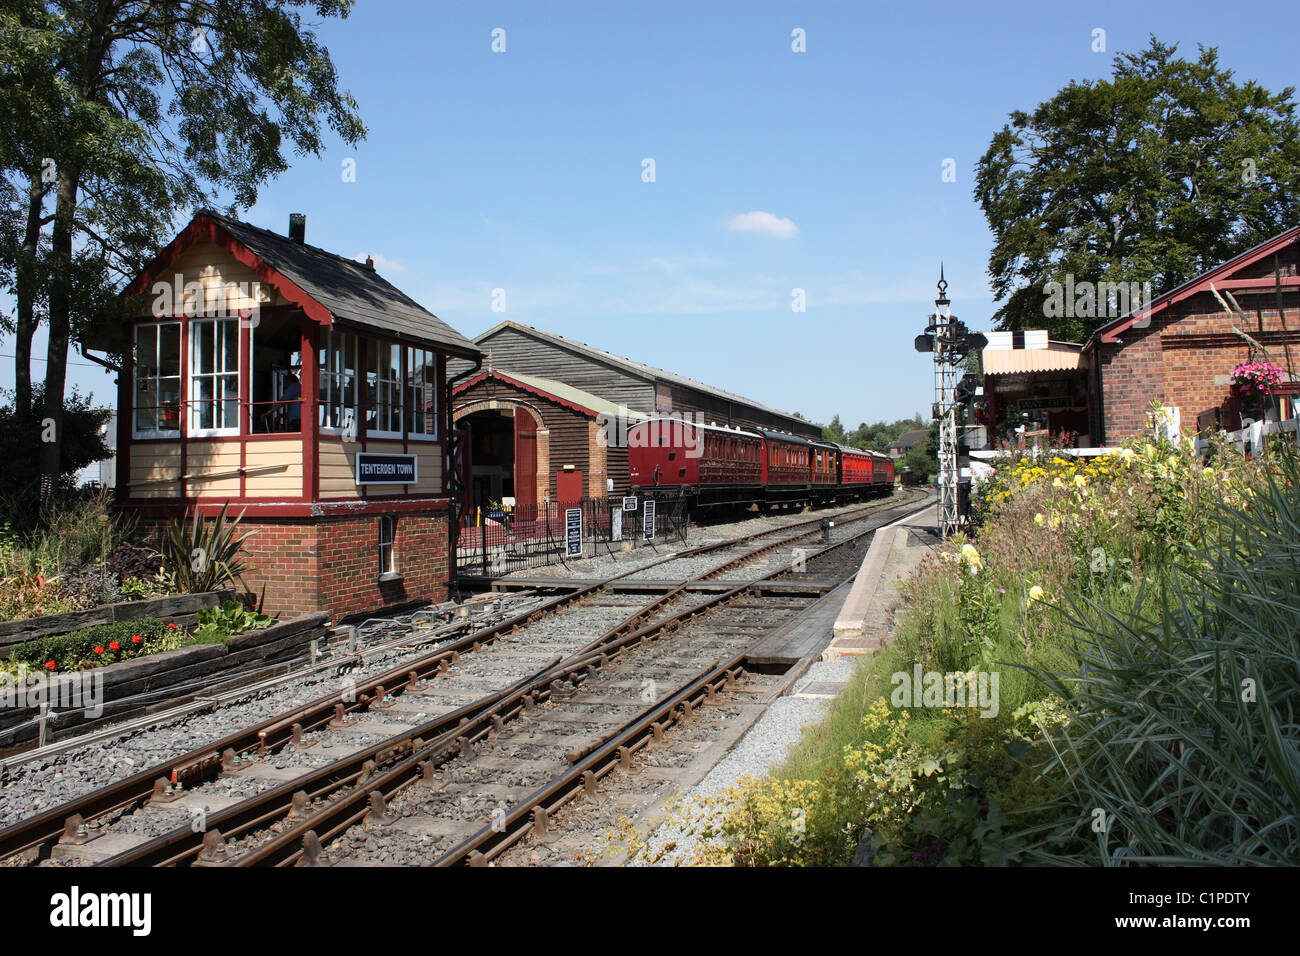 England, Kent, Tenterden, East Sussex Railway station and track - Stock Image